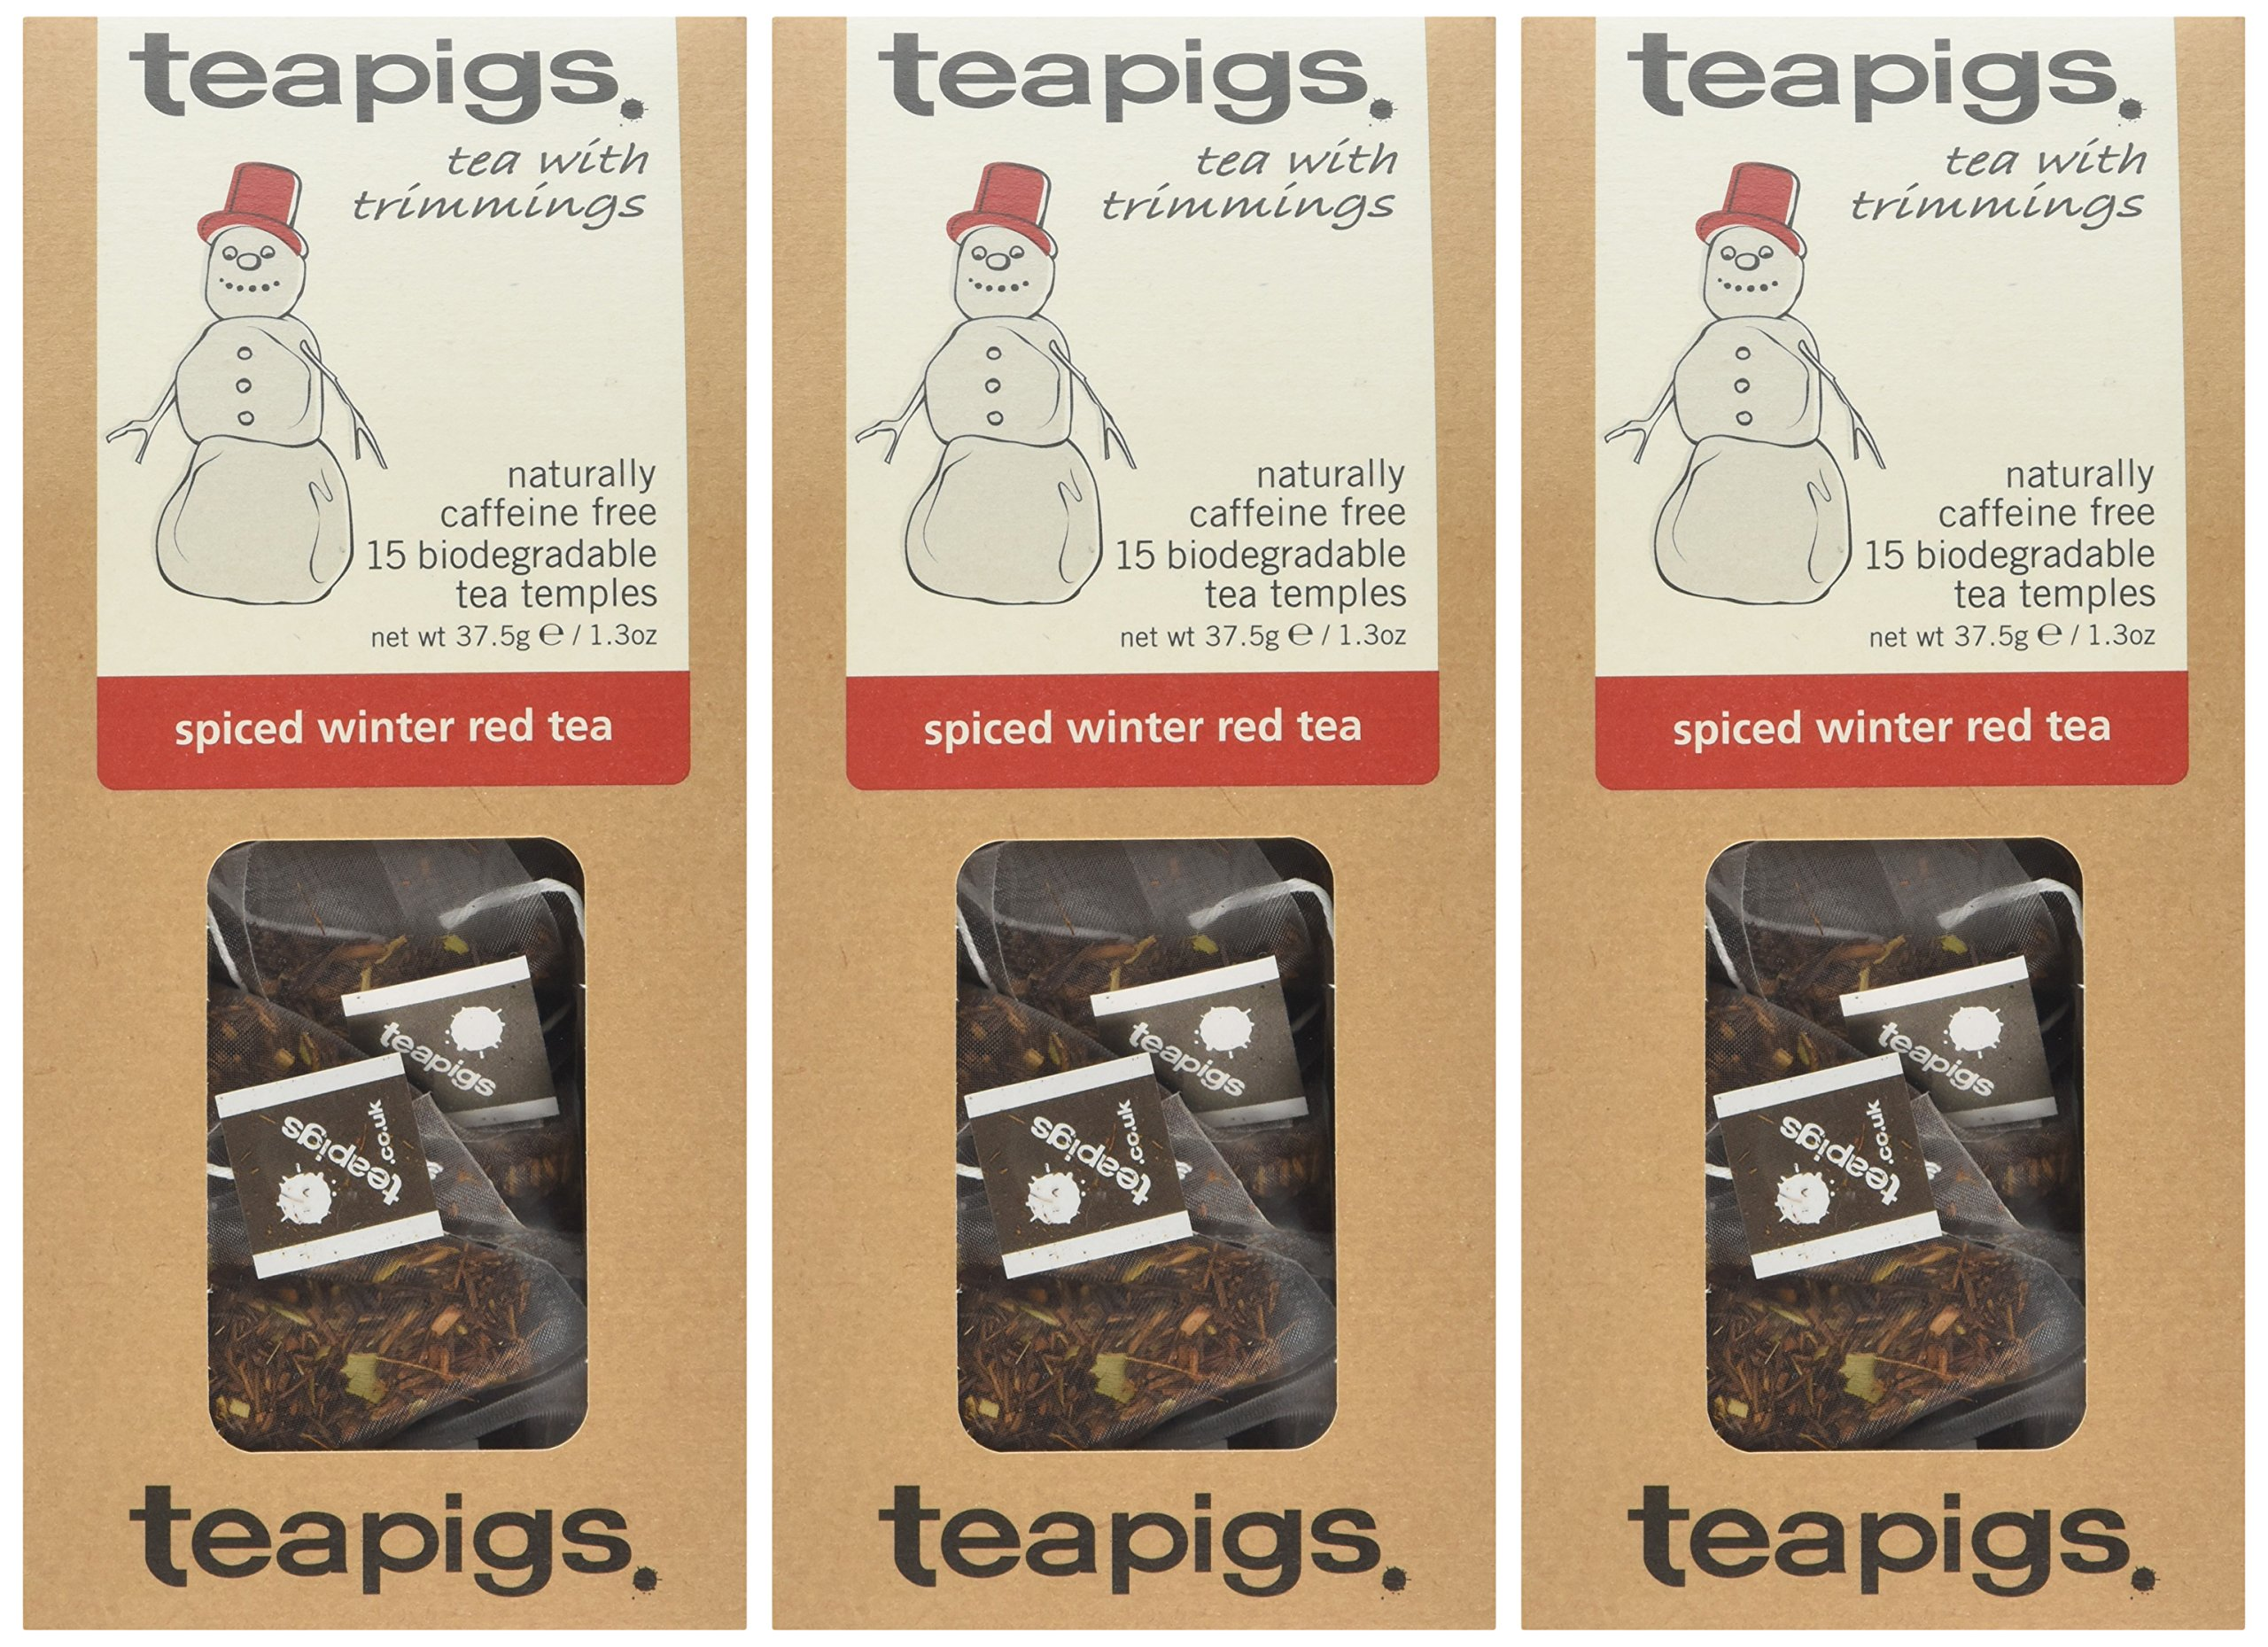 Teapigs spiced winter red tea bundle (rooibos tea) (3 packs of 15 bags) (45 bags) (a fruity, spicy tea with aromas of cinnamon, cloves, ginseng, orange, safflower petals) (brews in 3 minutes)